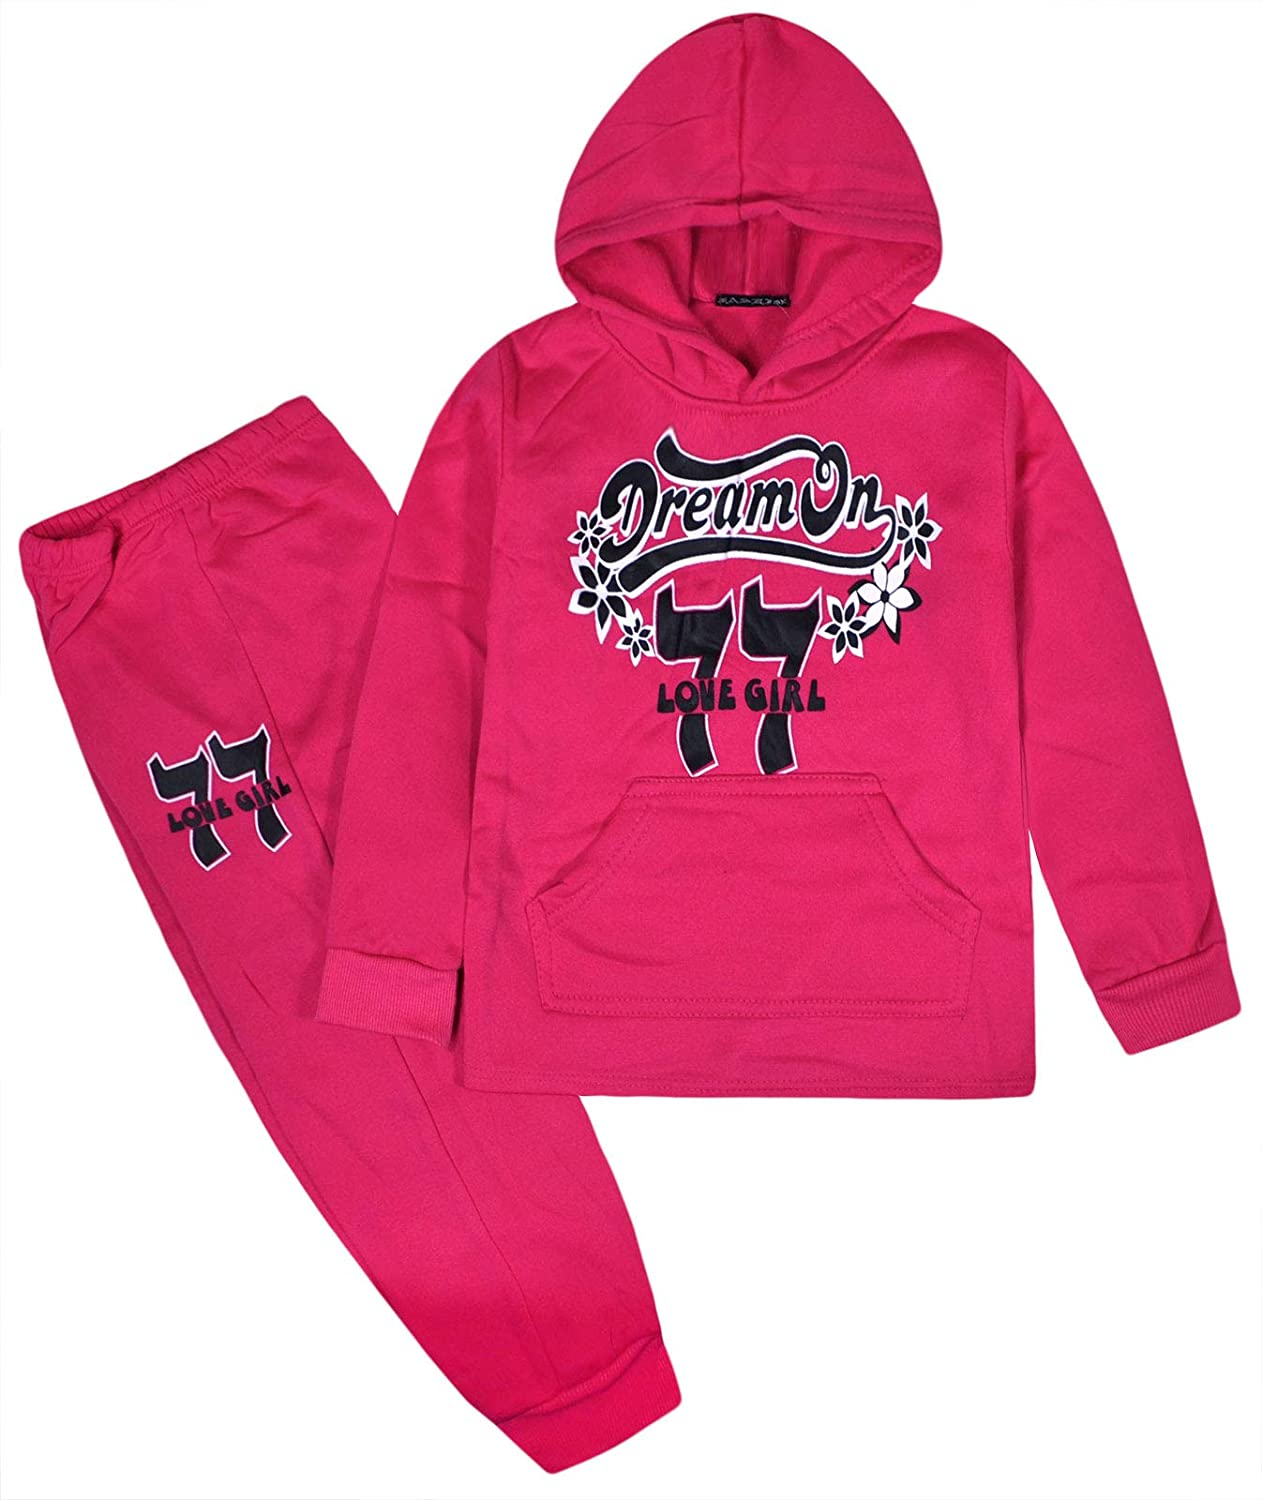 JollyRascals Girls Tracksuit Set Kids Hoodie and Jogging Bottom 2psc Suit New Ages 2 3 4 5 6 7 8 9 10 Years